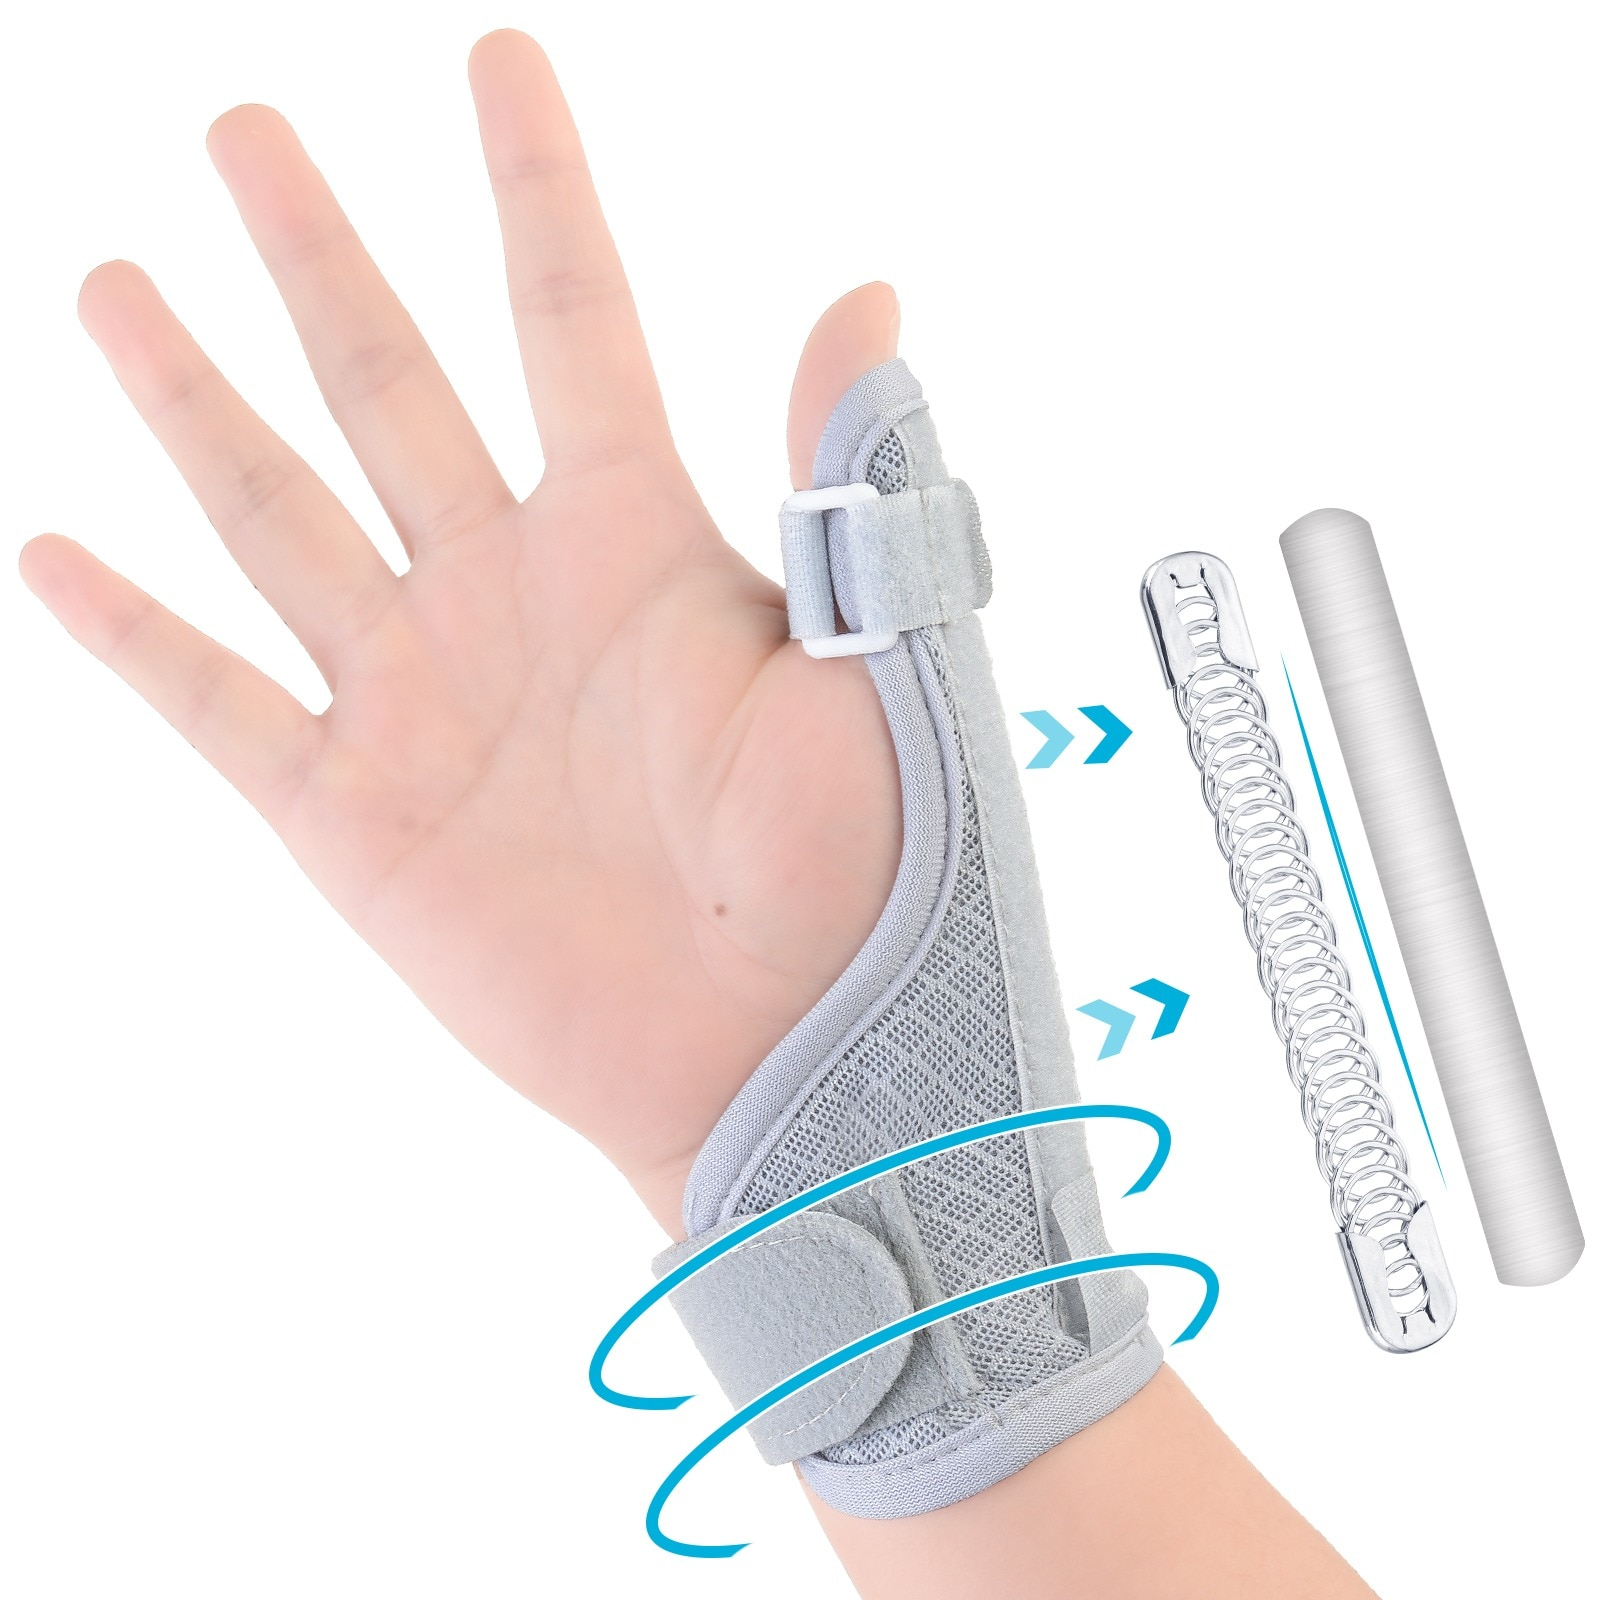 tcare reversible sports wrist brace thumb stabilizer adjustable wrist support wrap volleyball badminton basketball weightlifting Thumb Brace Adjustable Two-way Thumb Stabilizer Finger Support Wrist Band Compression Finger Brace for Tendonitis Arthritis